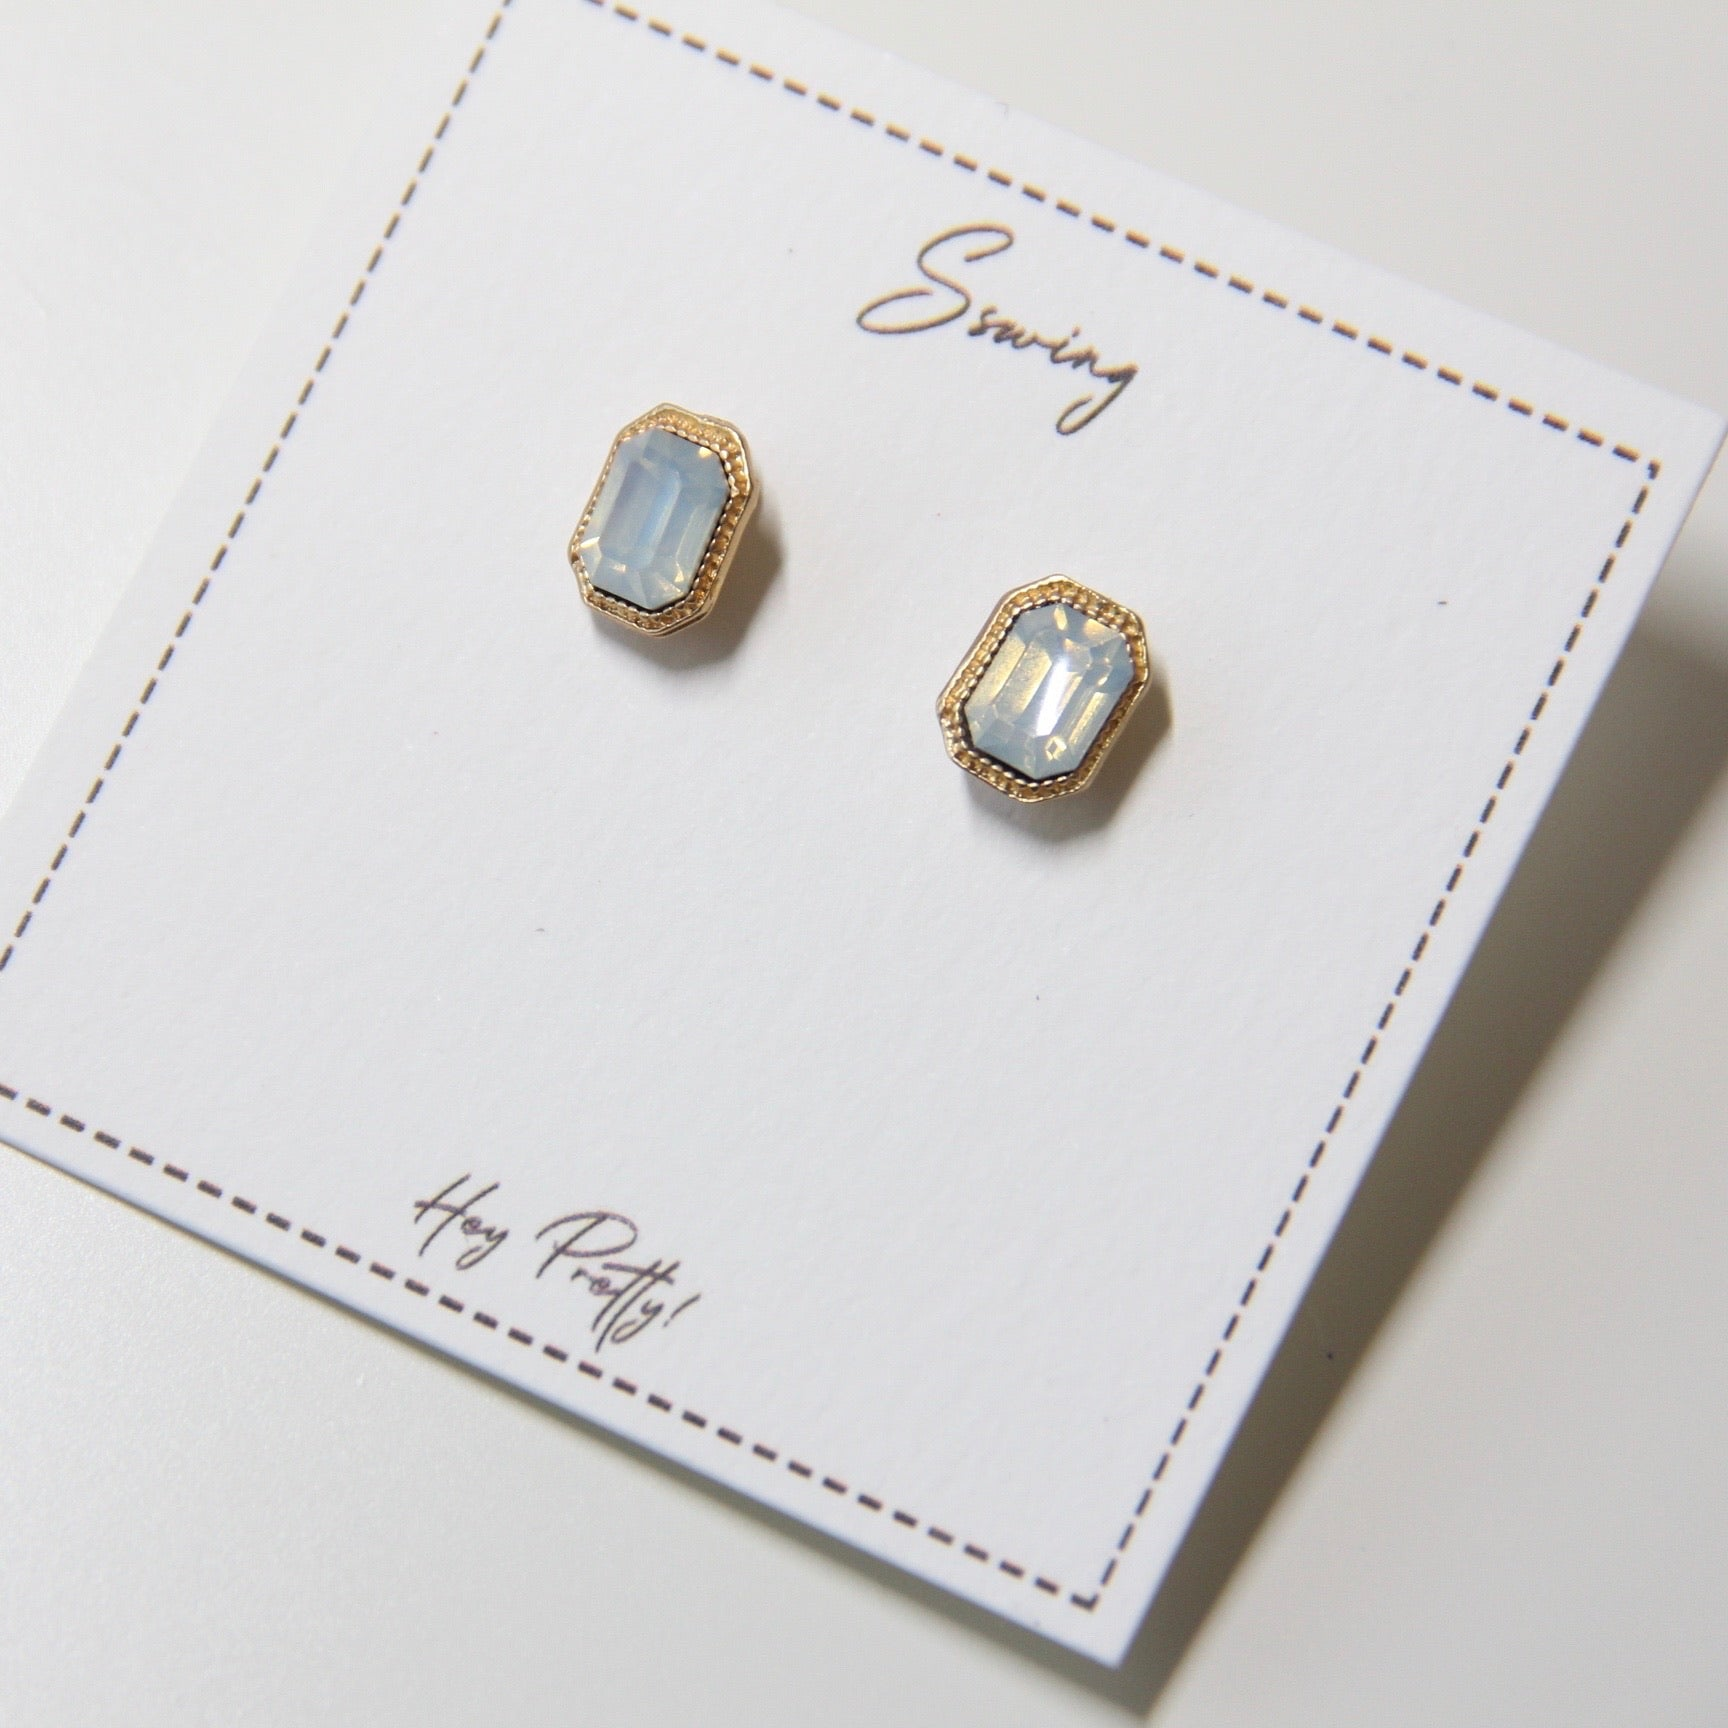 Vintage Mini Stud Earrings - Sswing Lifestyle Company